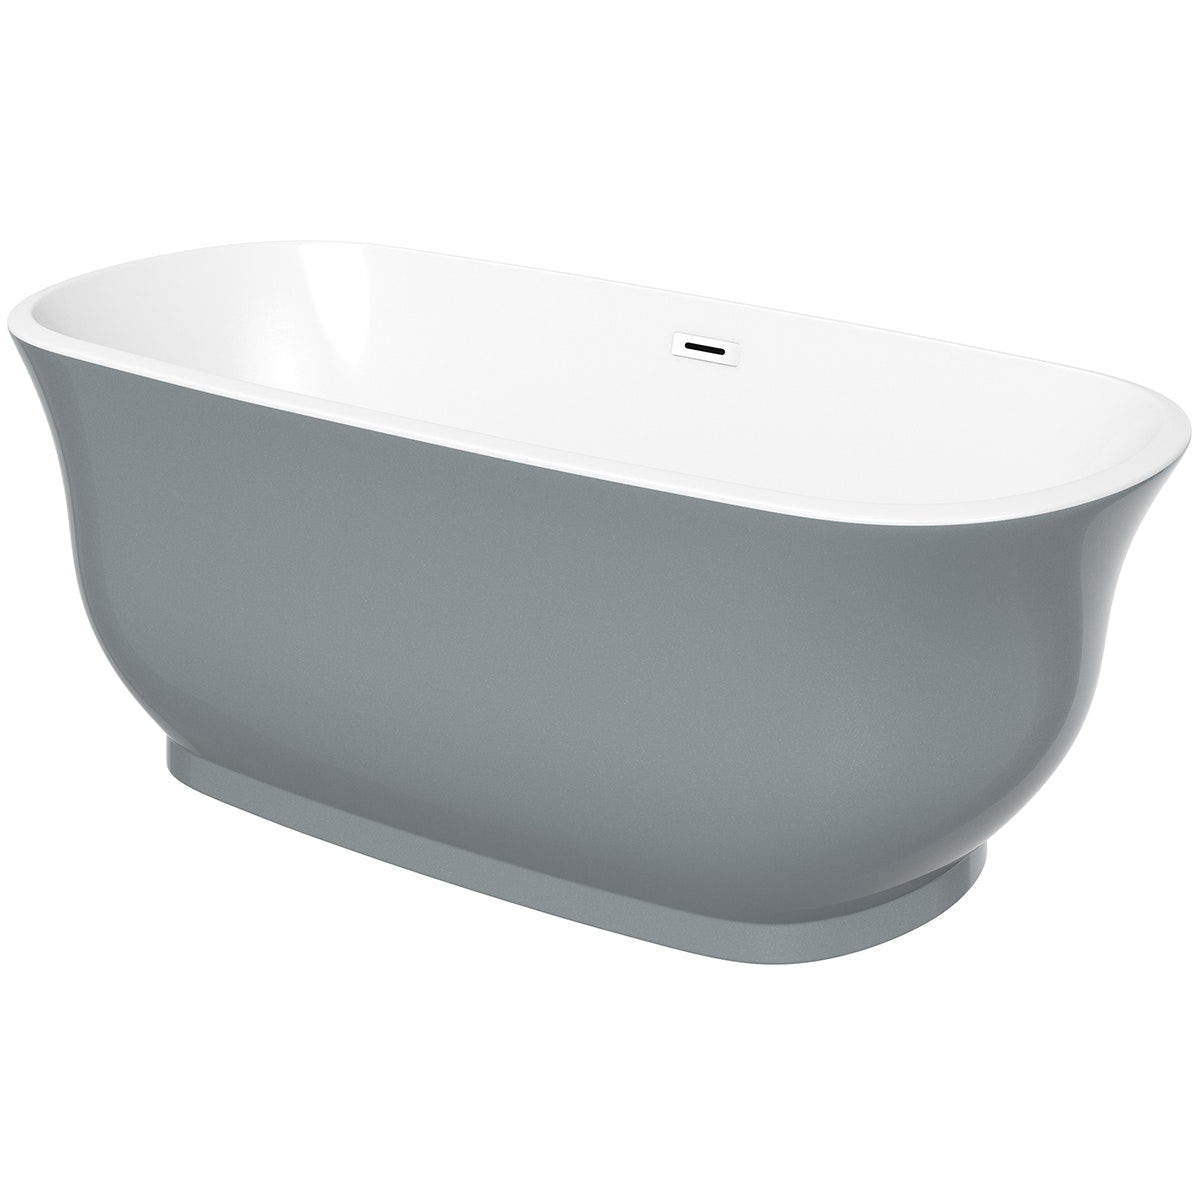 The Bath Co. Camberley storm coloured traditional freestanding bath offer pack